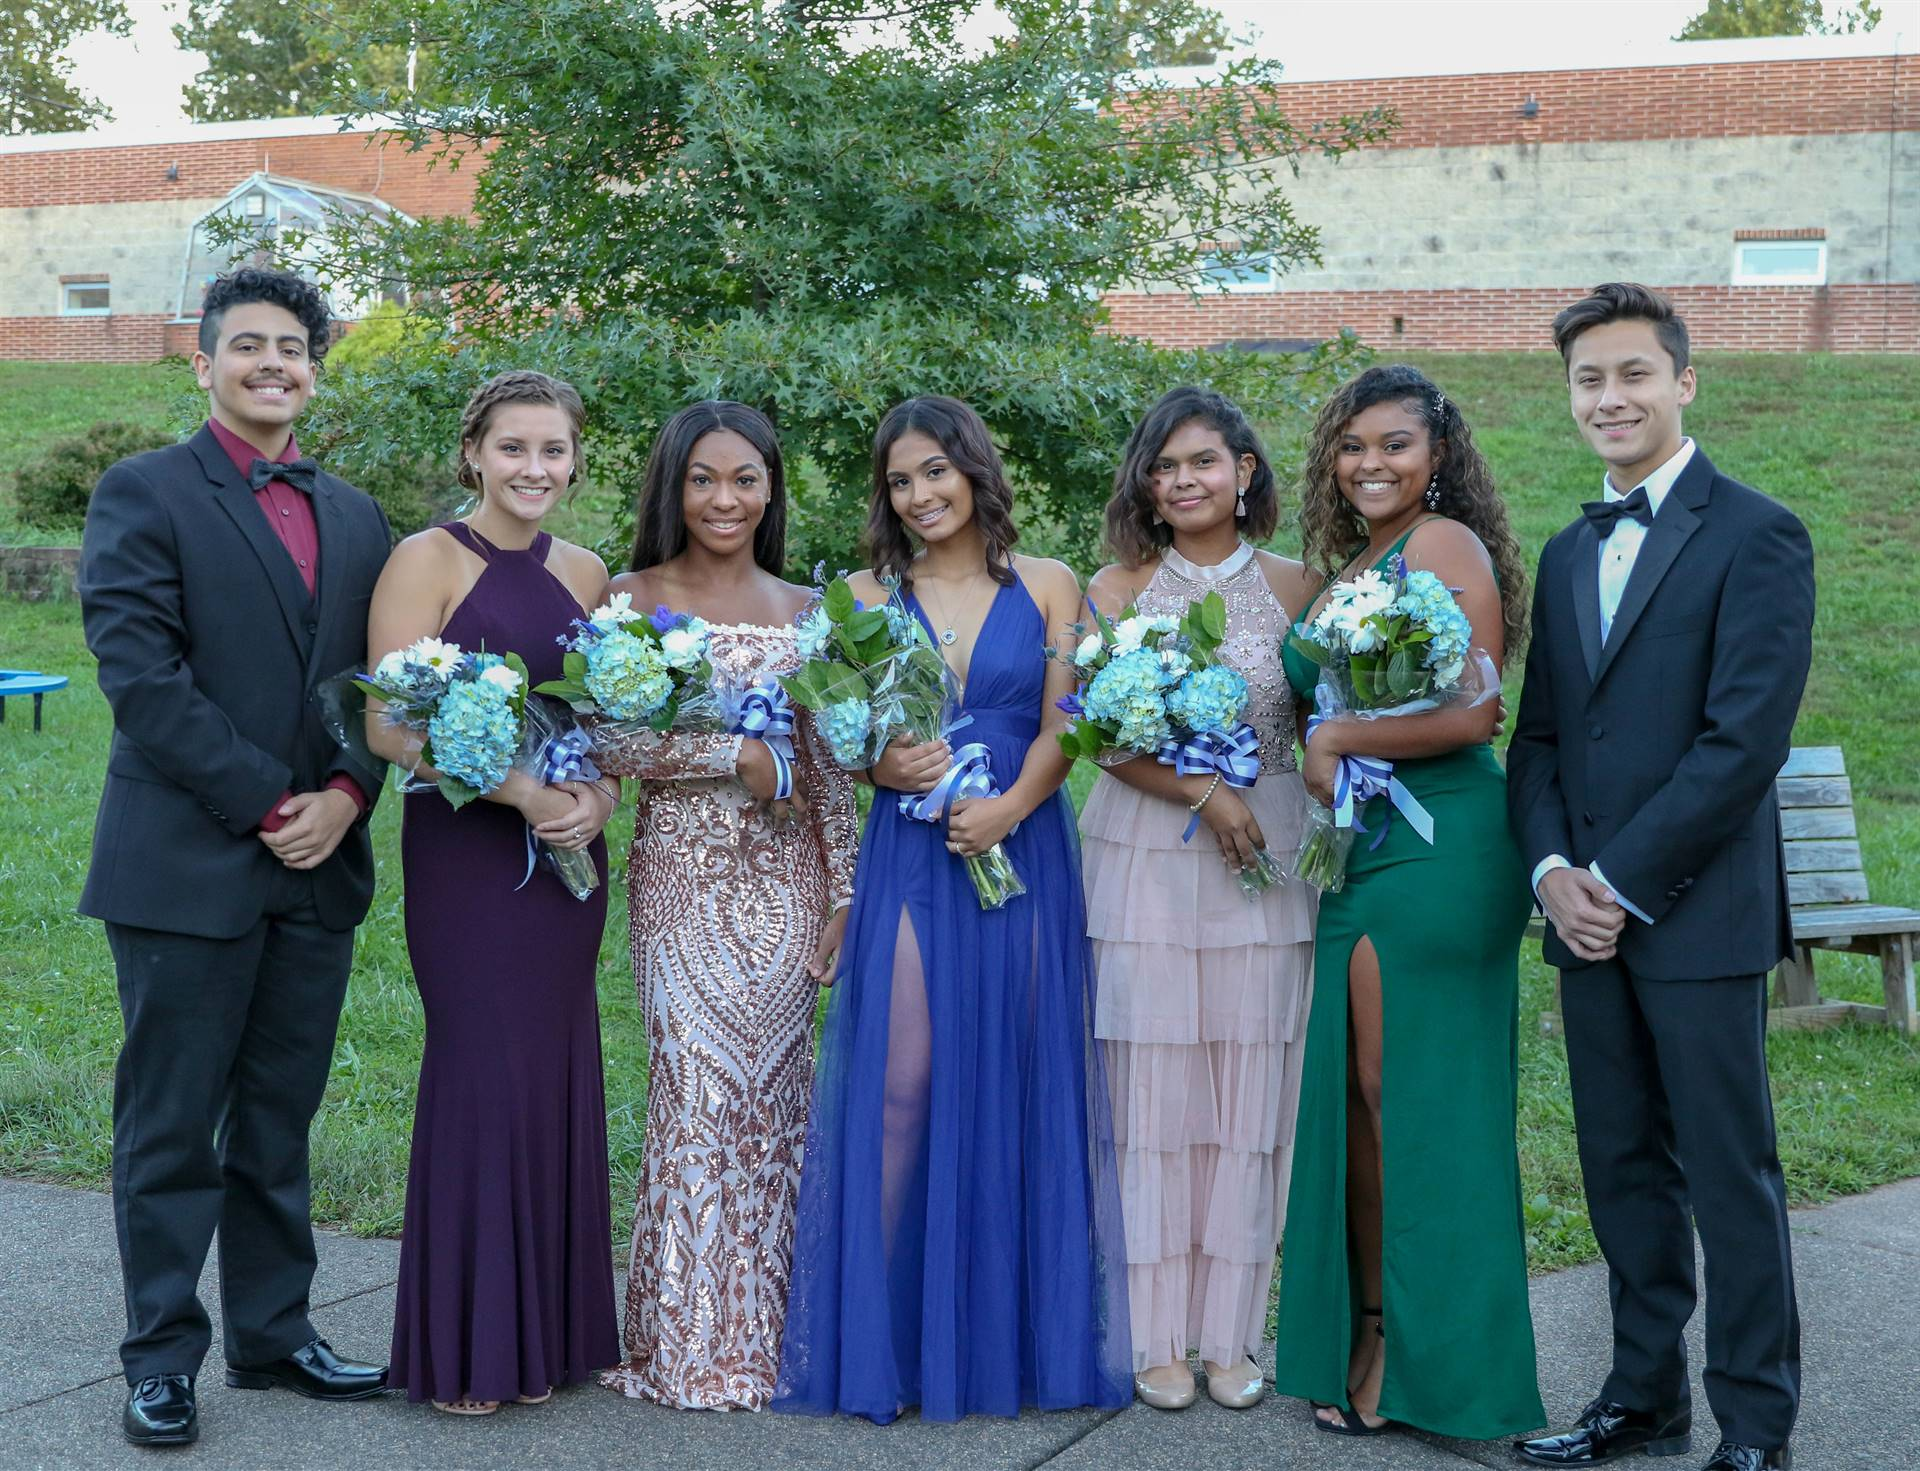 Pottstown HOmecoming 2018 Court